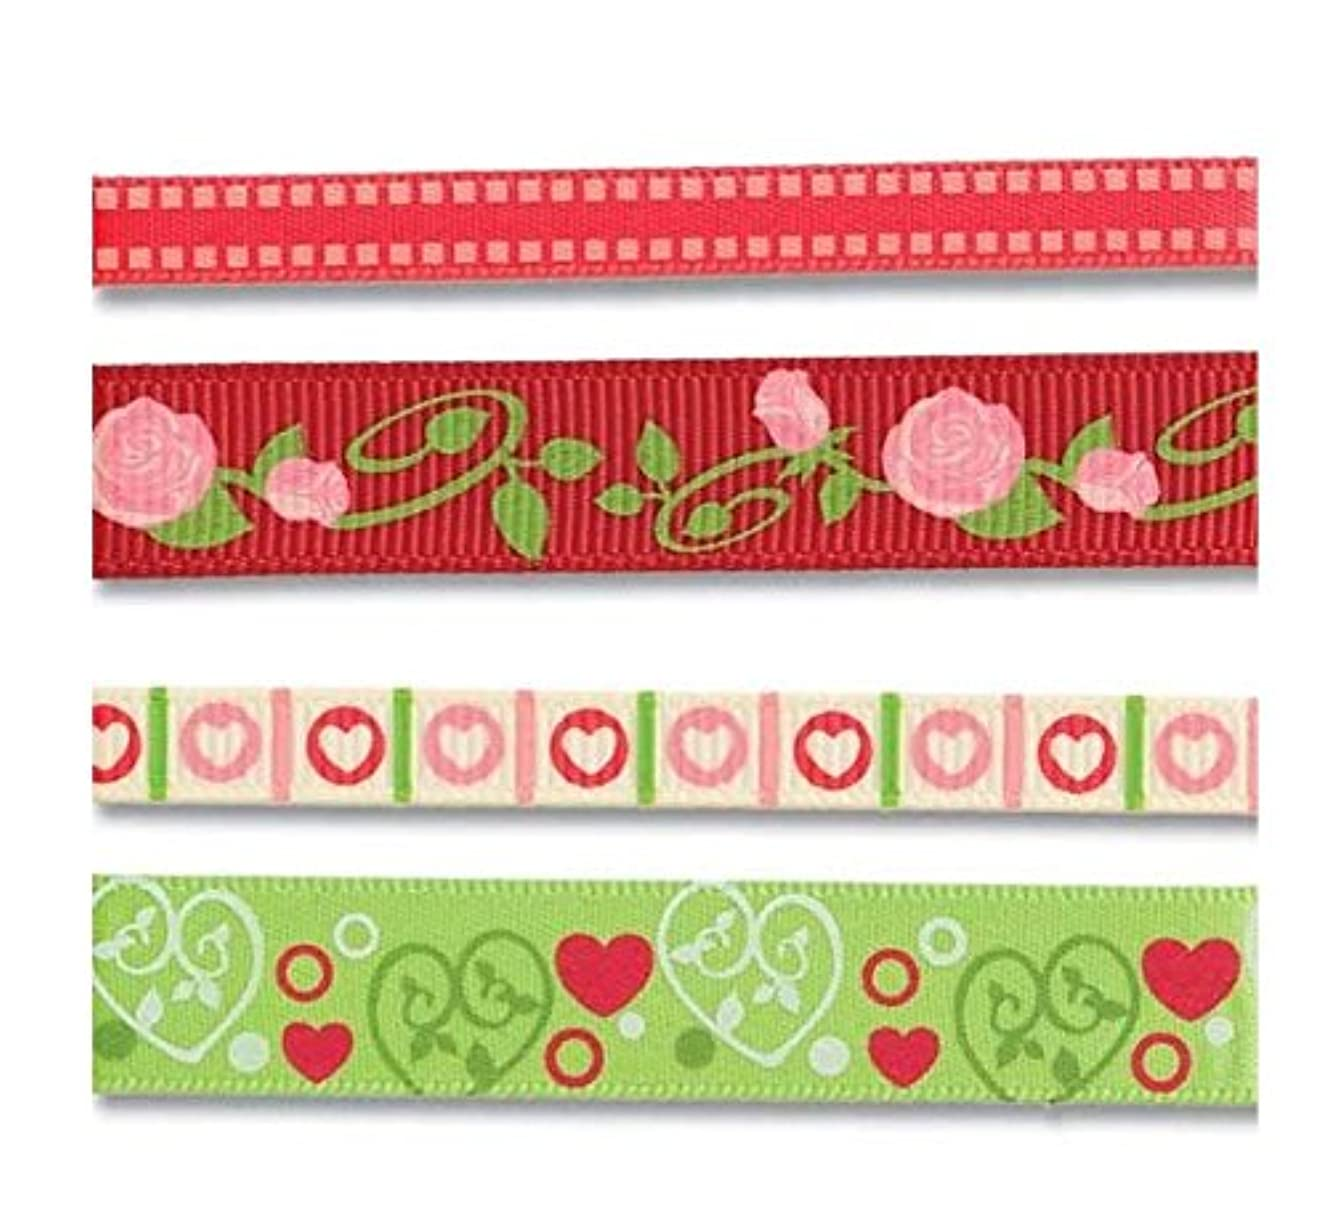 KAREN FOSTER Design Craft Ribbon Trimmings, Sweetheart